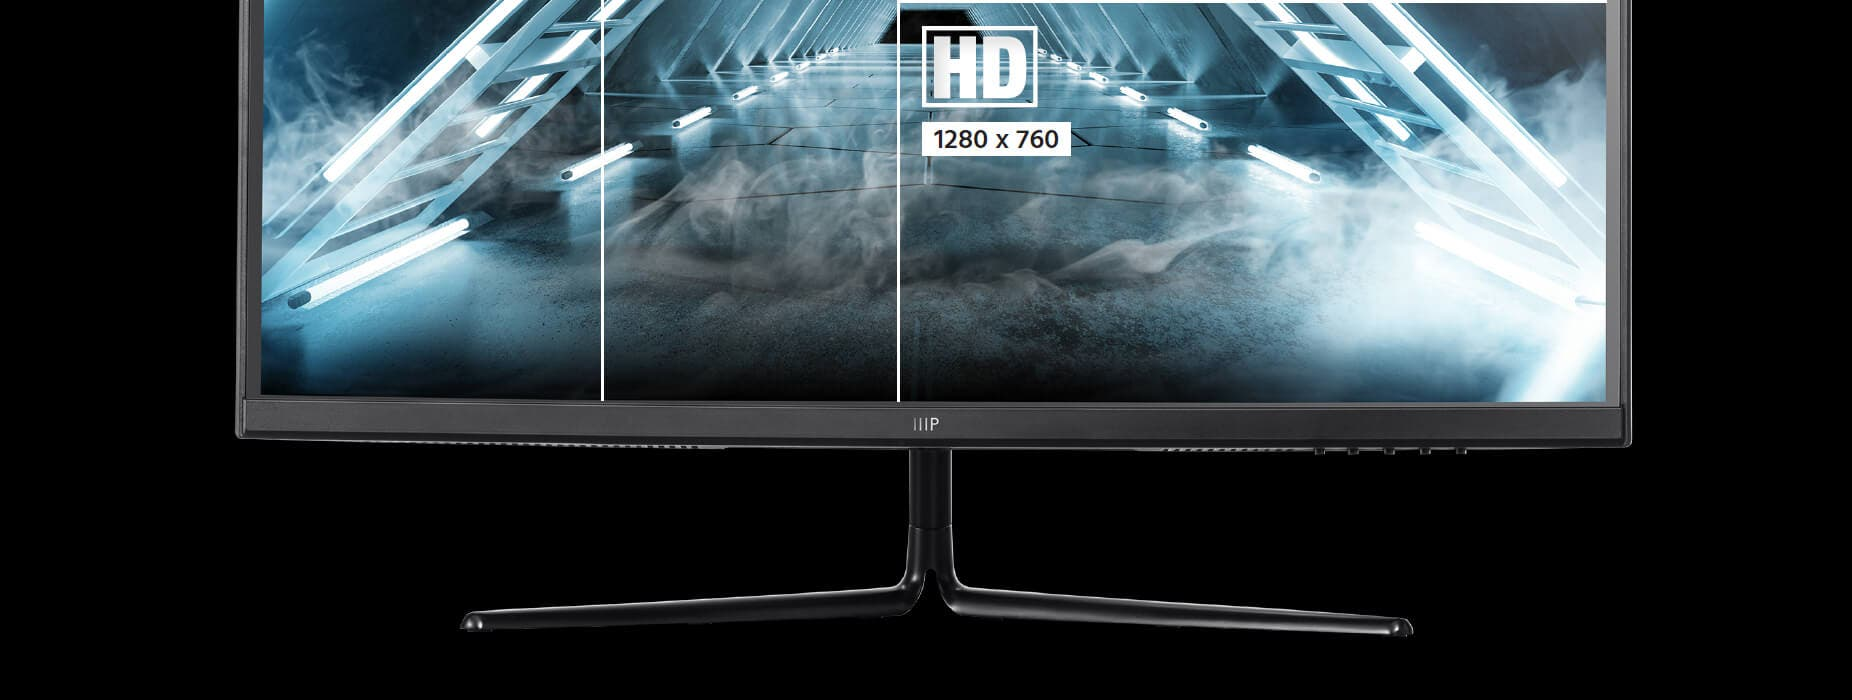 This monitor features a maximum resolution of 2560x1440 (QHD), giving it stunning, high resolution detail for an immersive gaming experience.